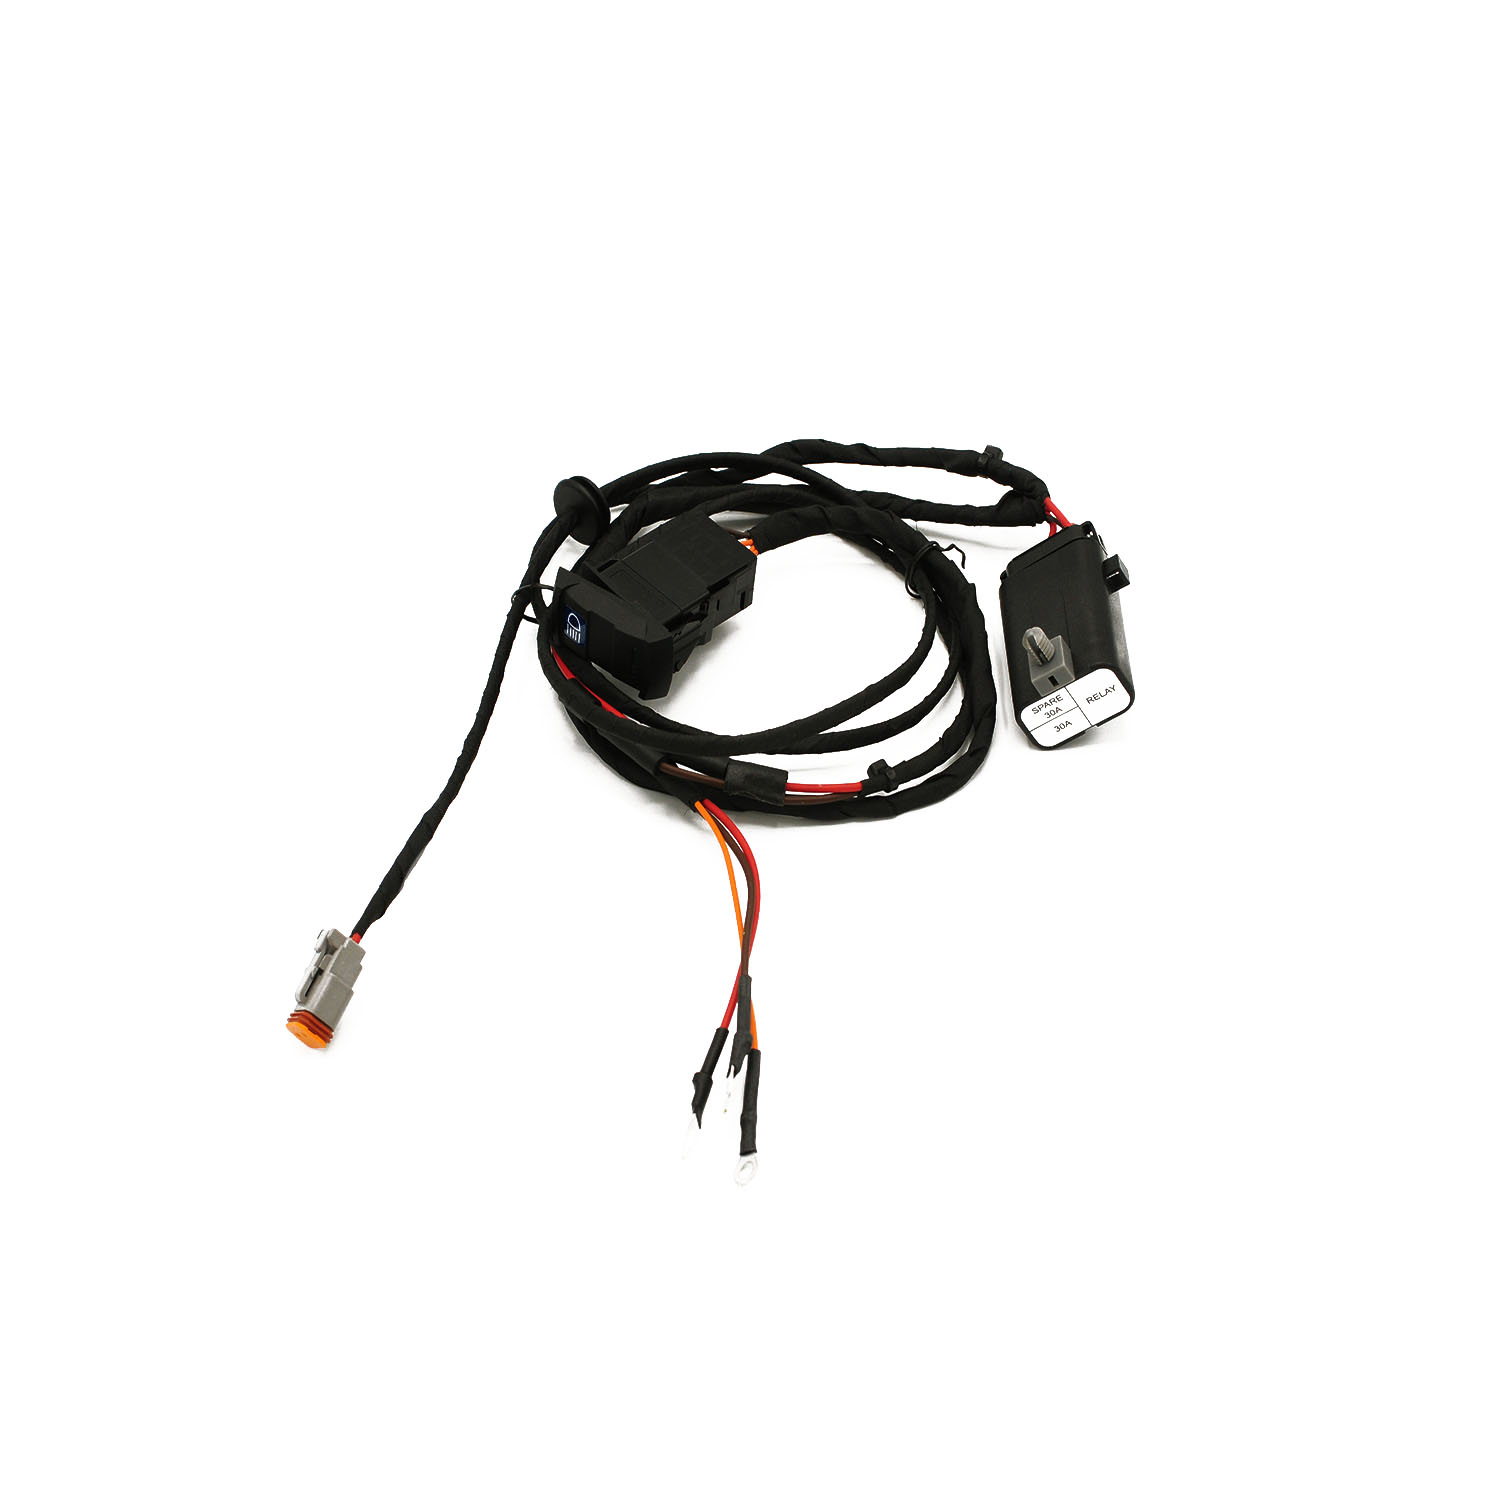 Polaris Wiring Harness Connectors Diagram Schemes Chrysler Strap Clips Opinions About U2022 Scag